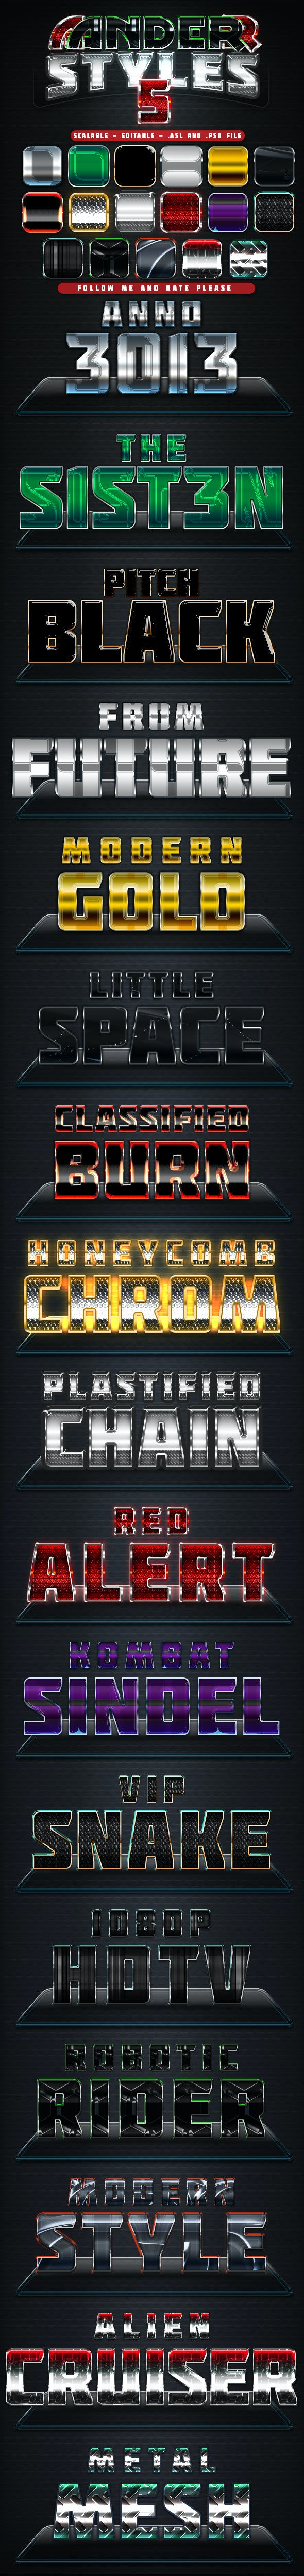 Anderr Styles 5 - Text Effects Styles